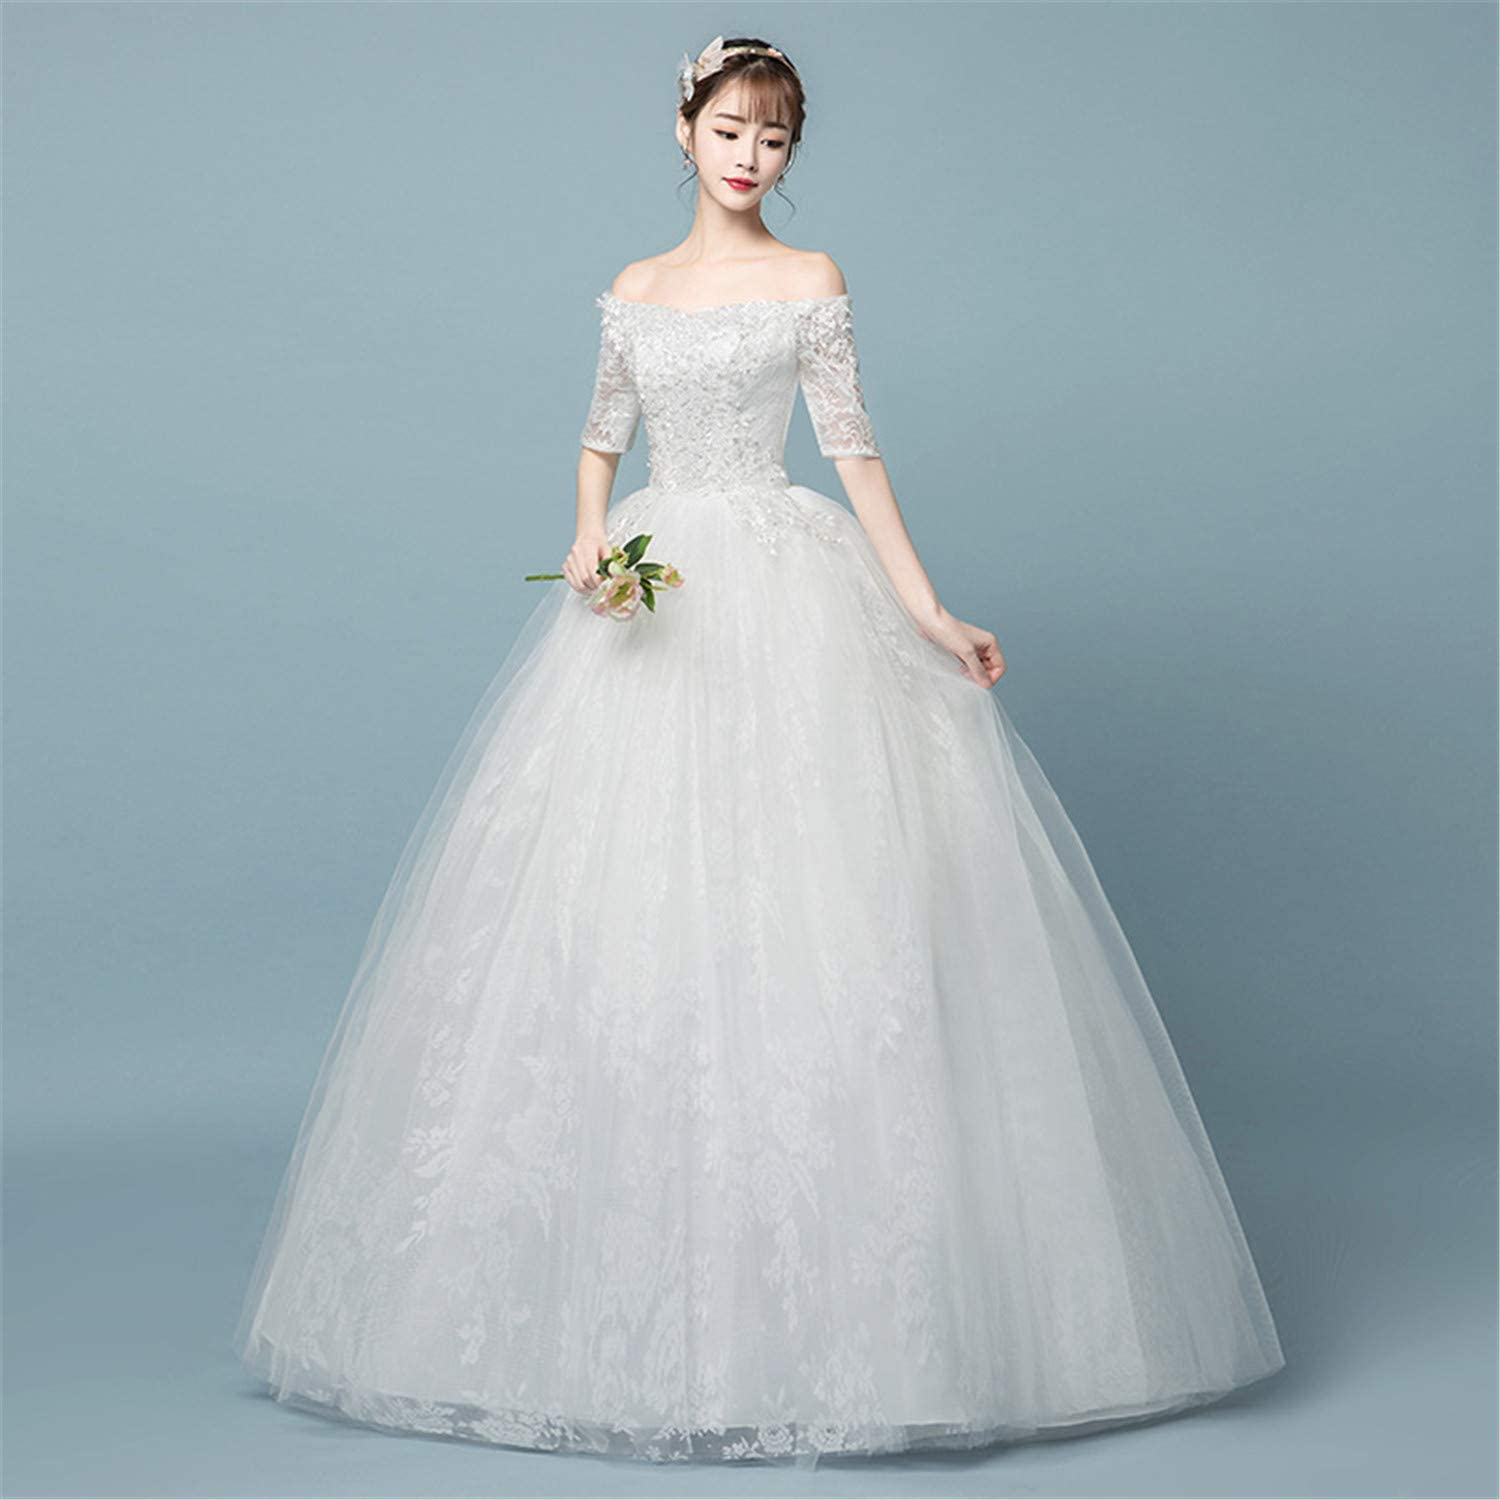 Strapless Shoulder Wedding Dress Bride Big Code Show Skinny Princess Studio Official Fashion